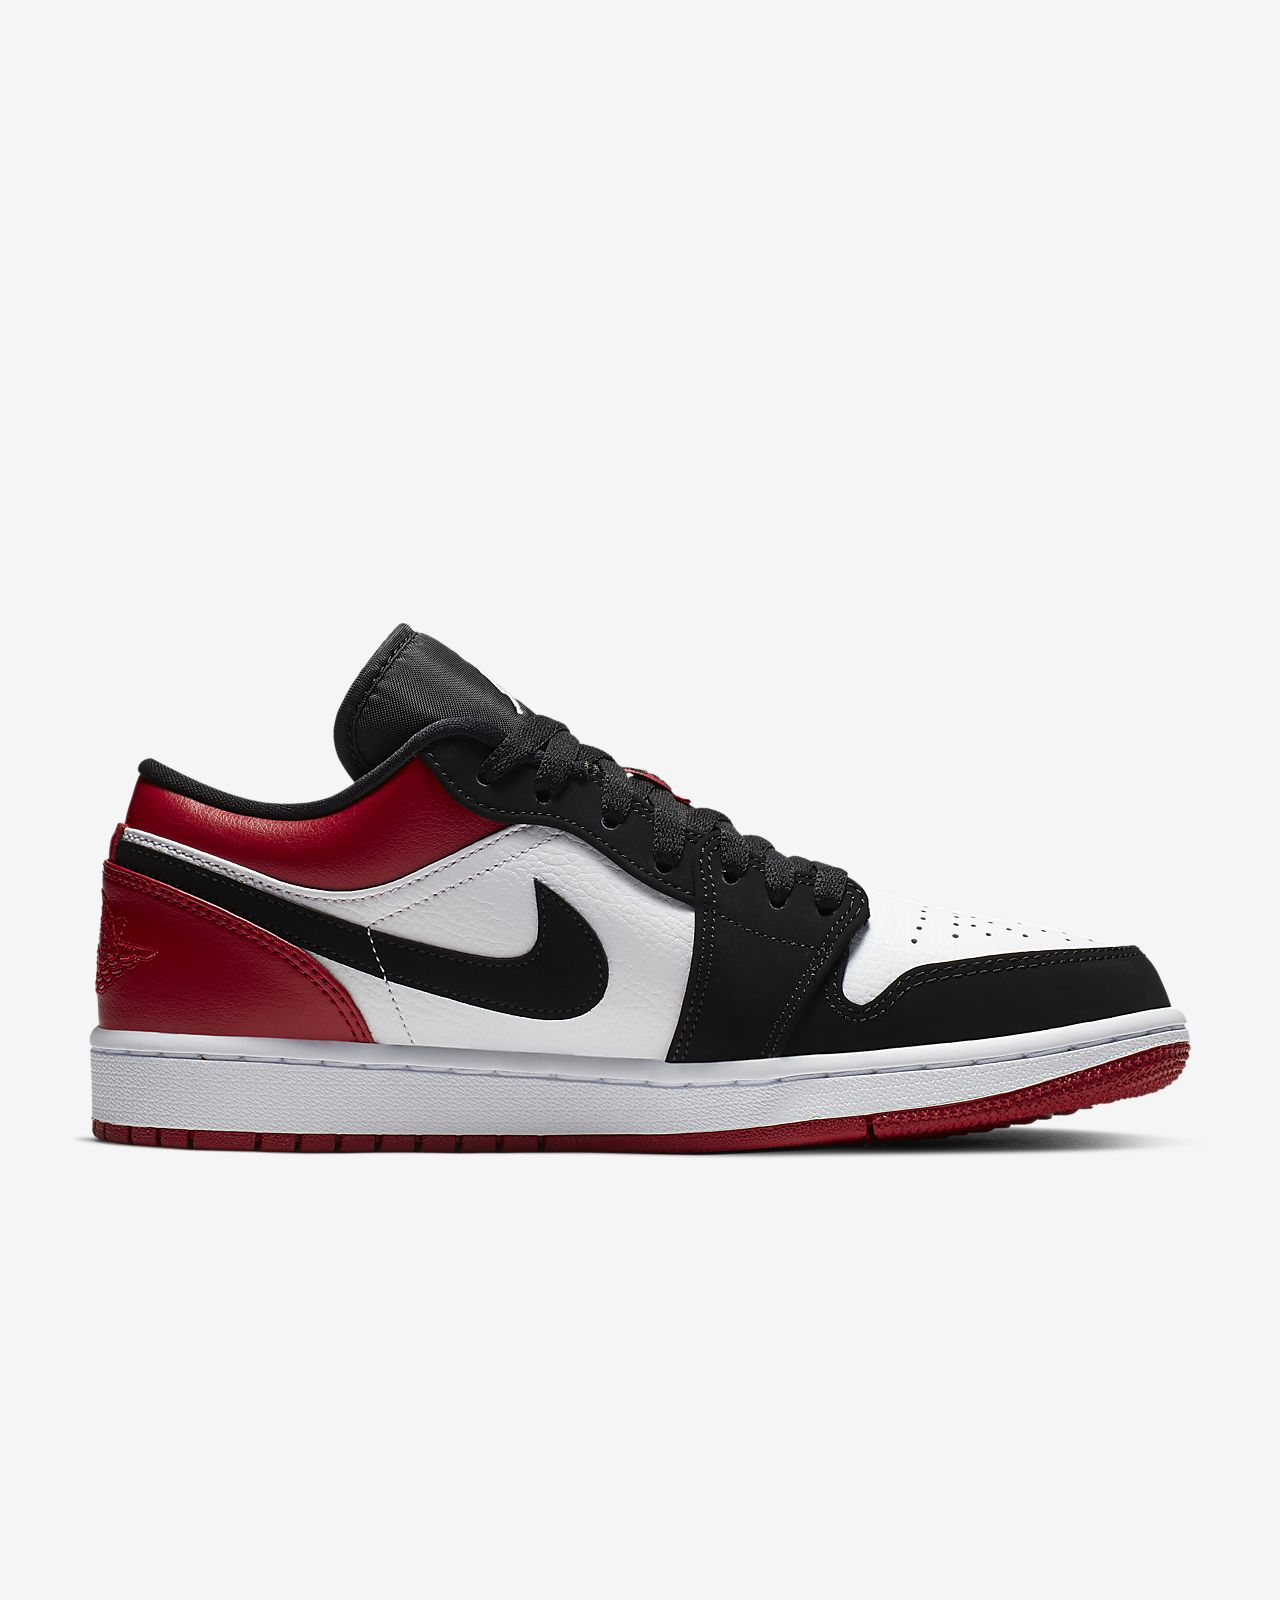 premium selection 3cd11 342f1 ... Air Jordan 1 Low Men s Shoe